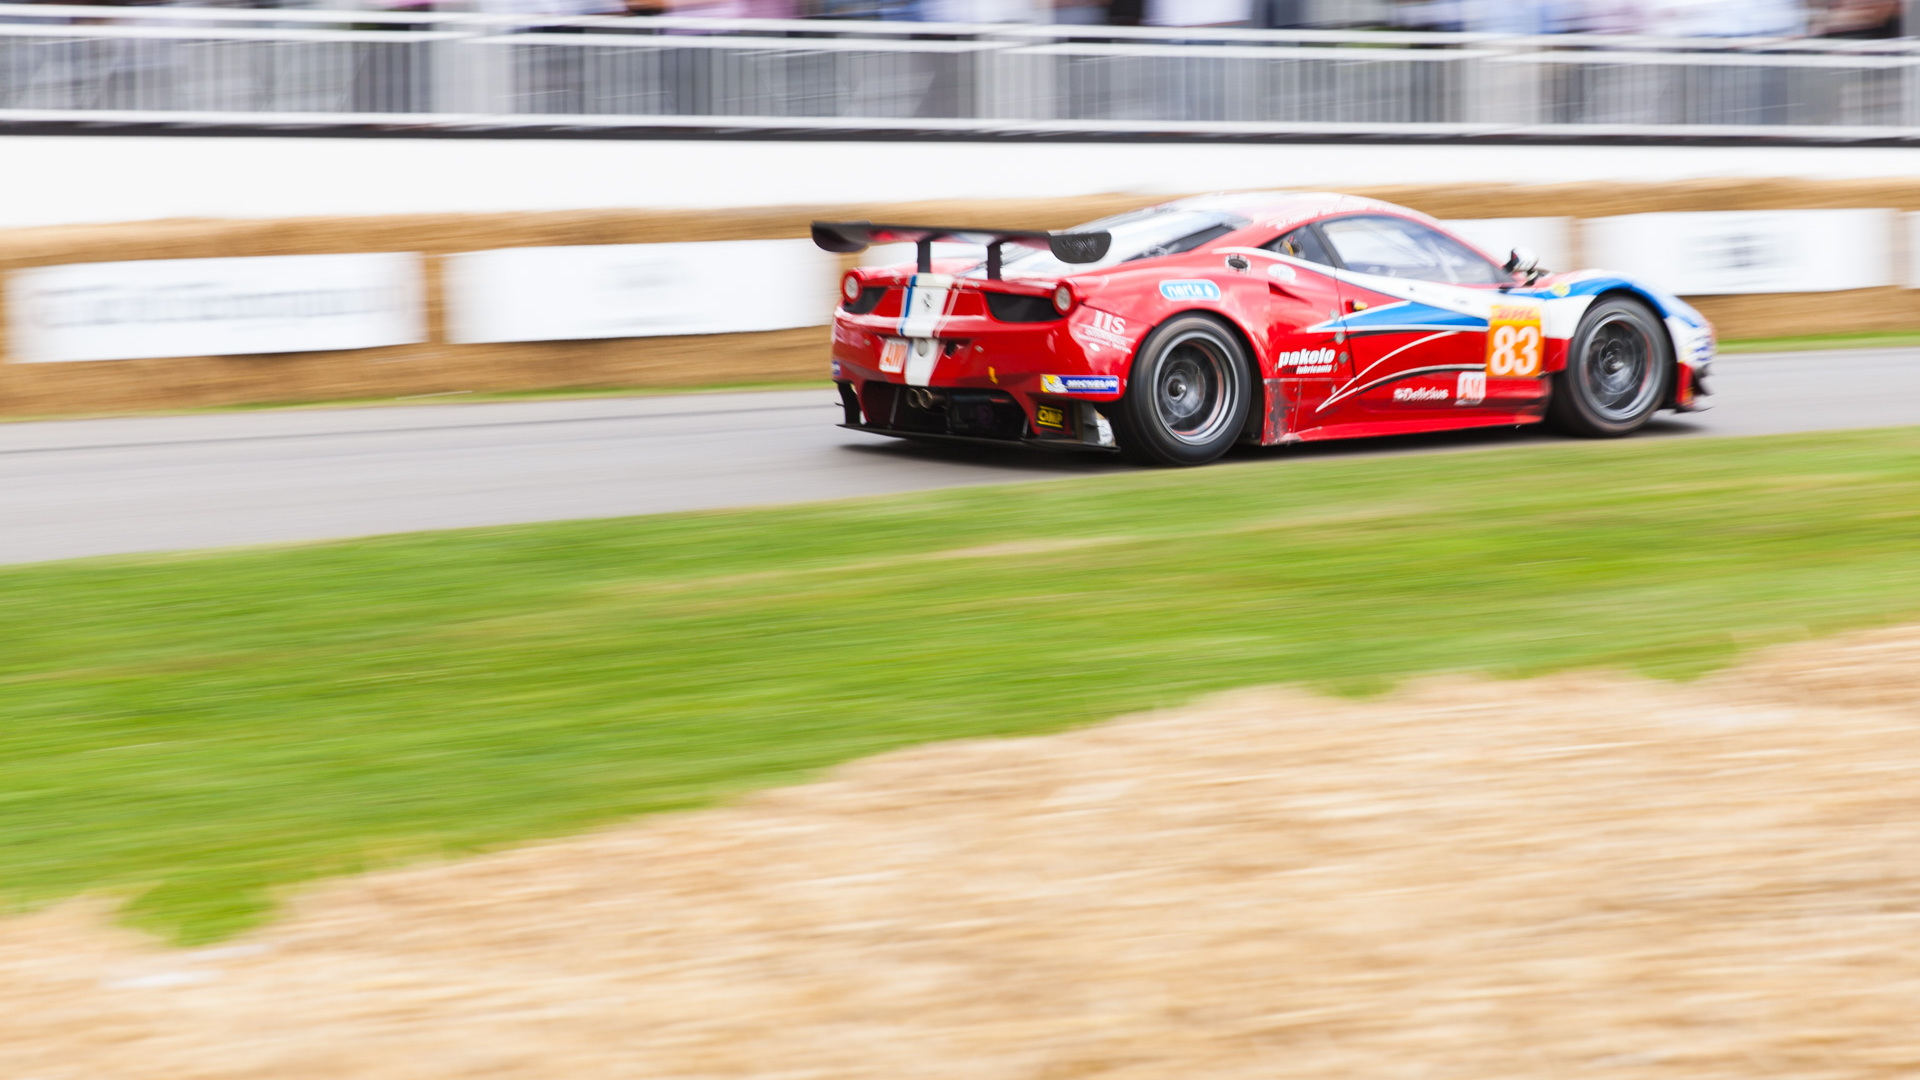 2017 Goodwood Festival of Speed-Day 2